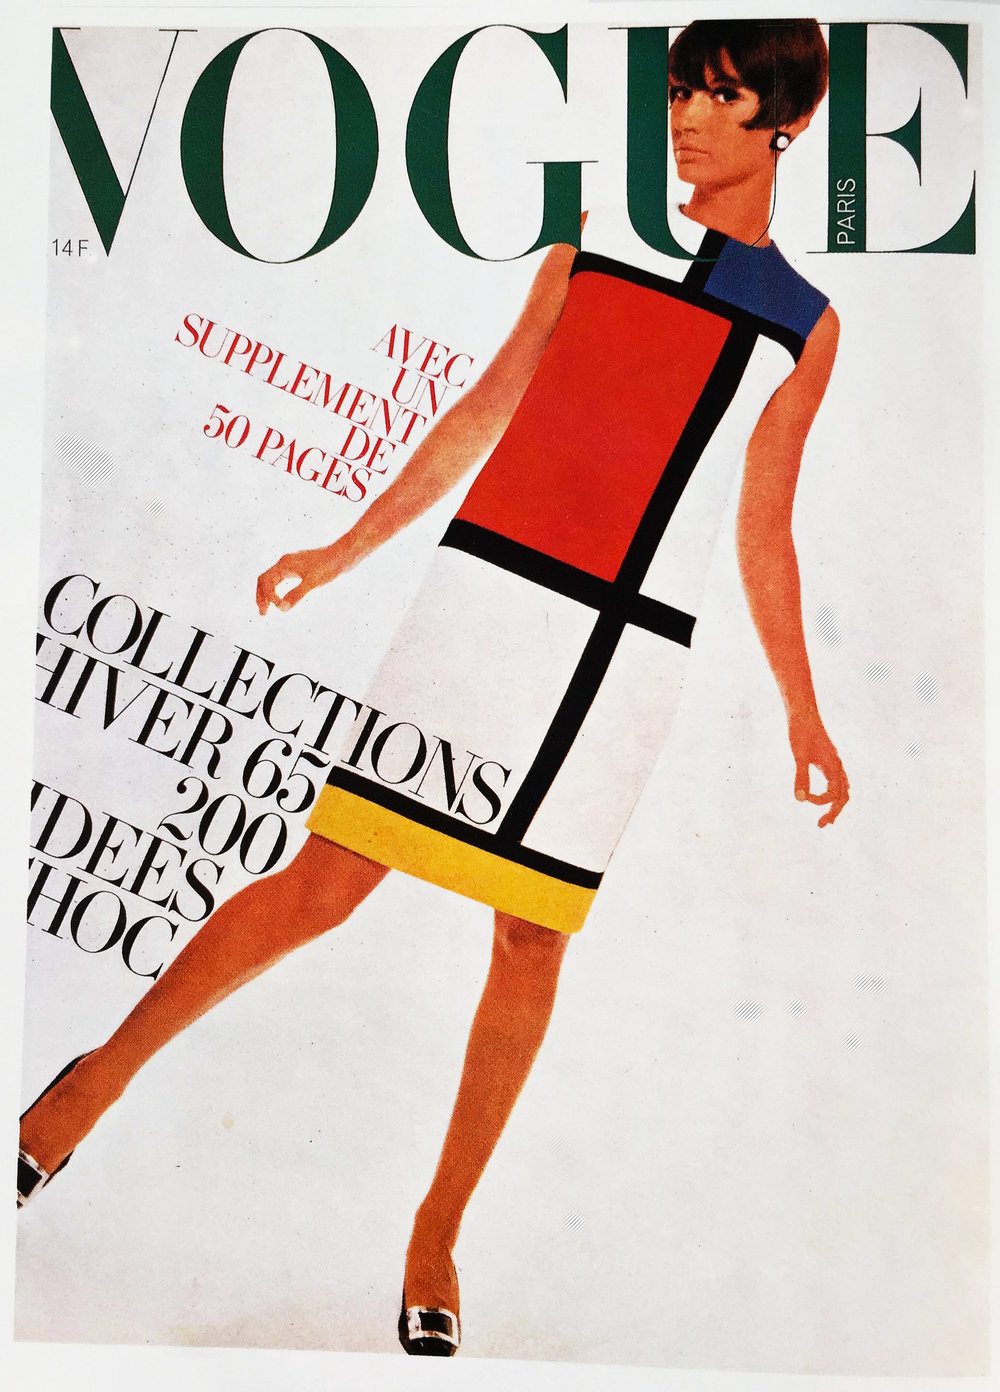 vogue_paris_mondrian_1965.jpg